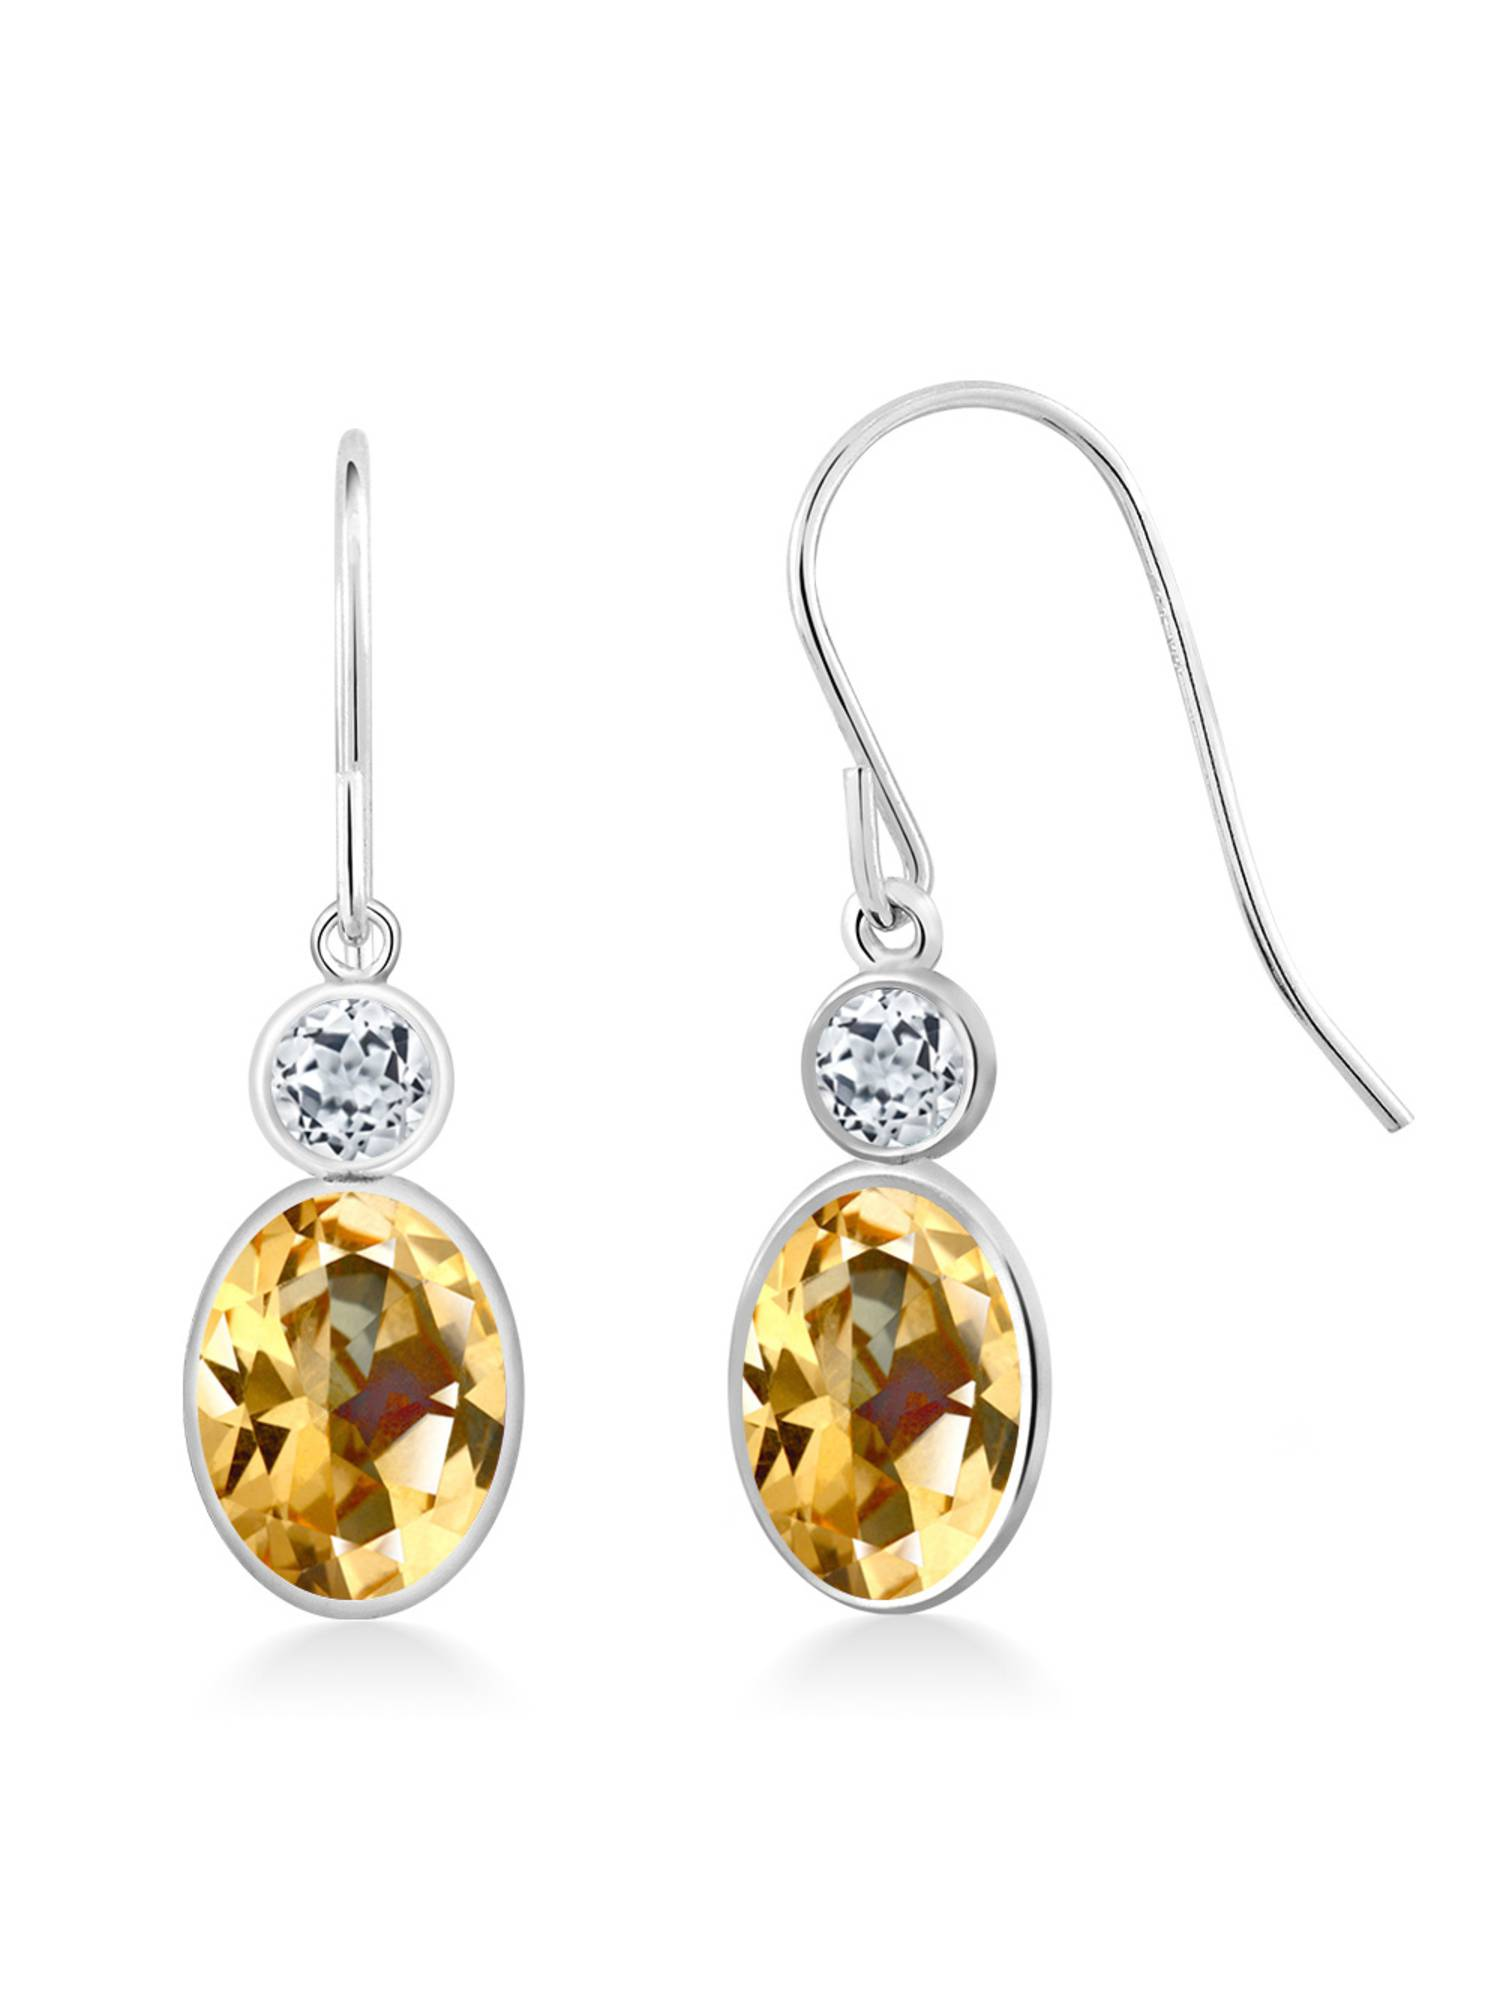 14K White Gold Earrings Topaz Set with Oval Honey Topaz from Swarovski by